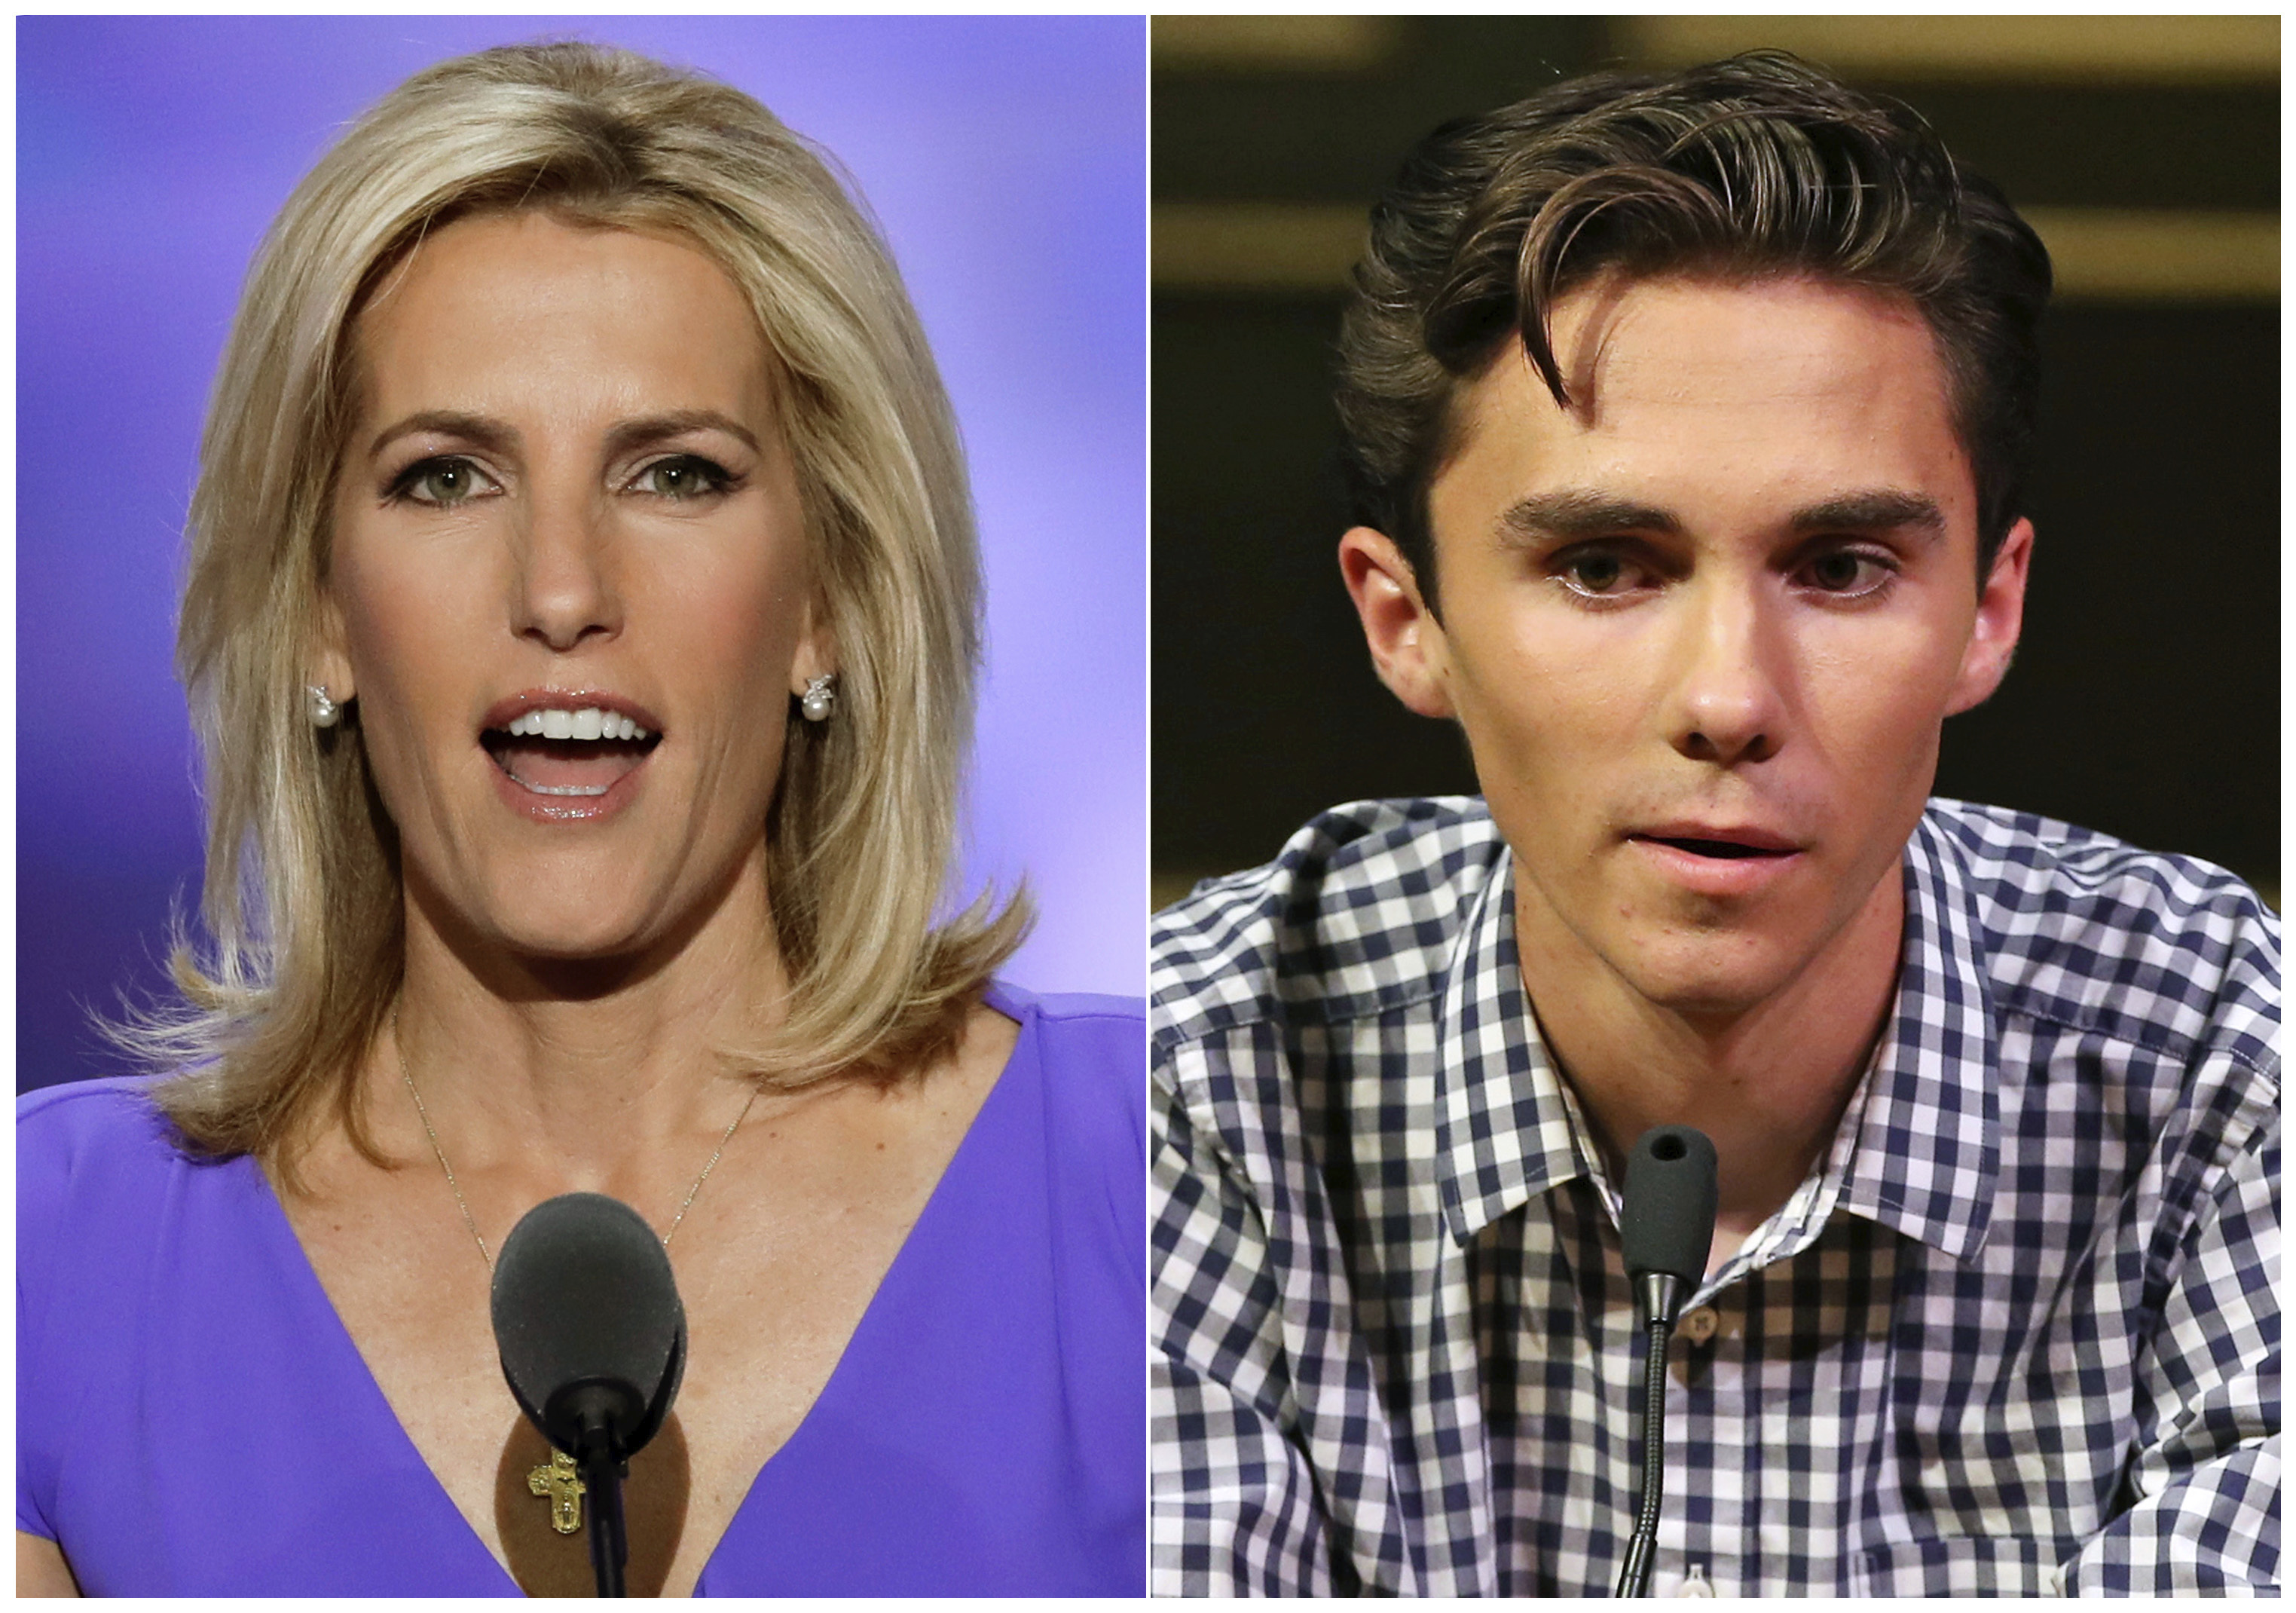 NEWS BITES: David Hogg calls Laura Ingraham a bully, teachers plan large walkout, SpaceX prepares for launch